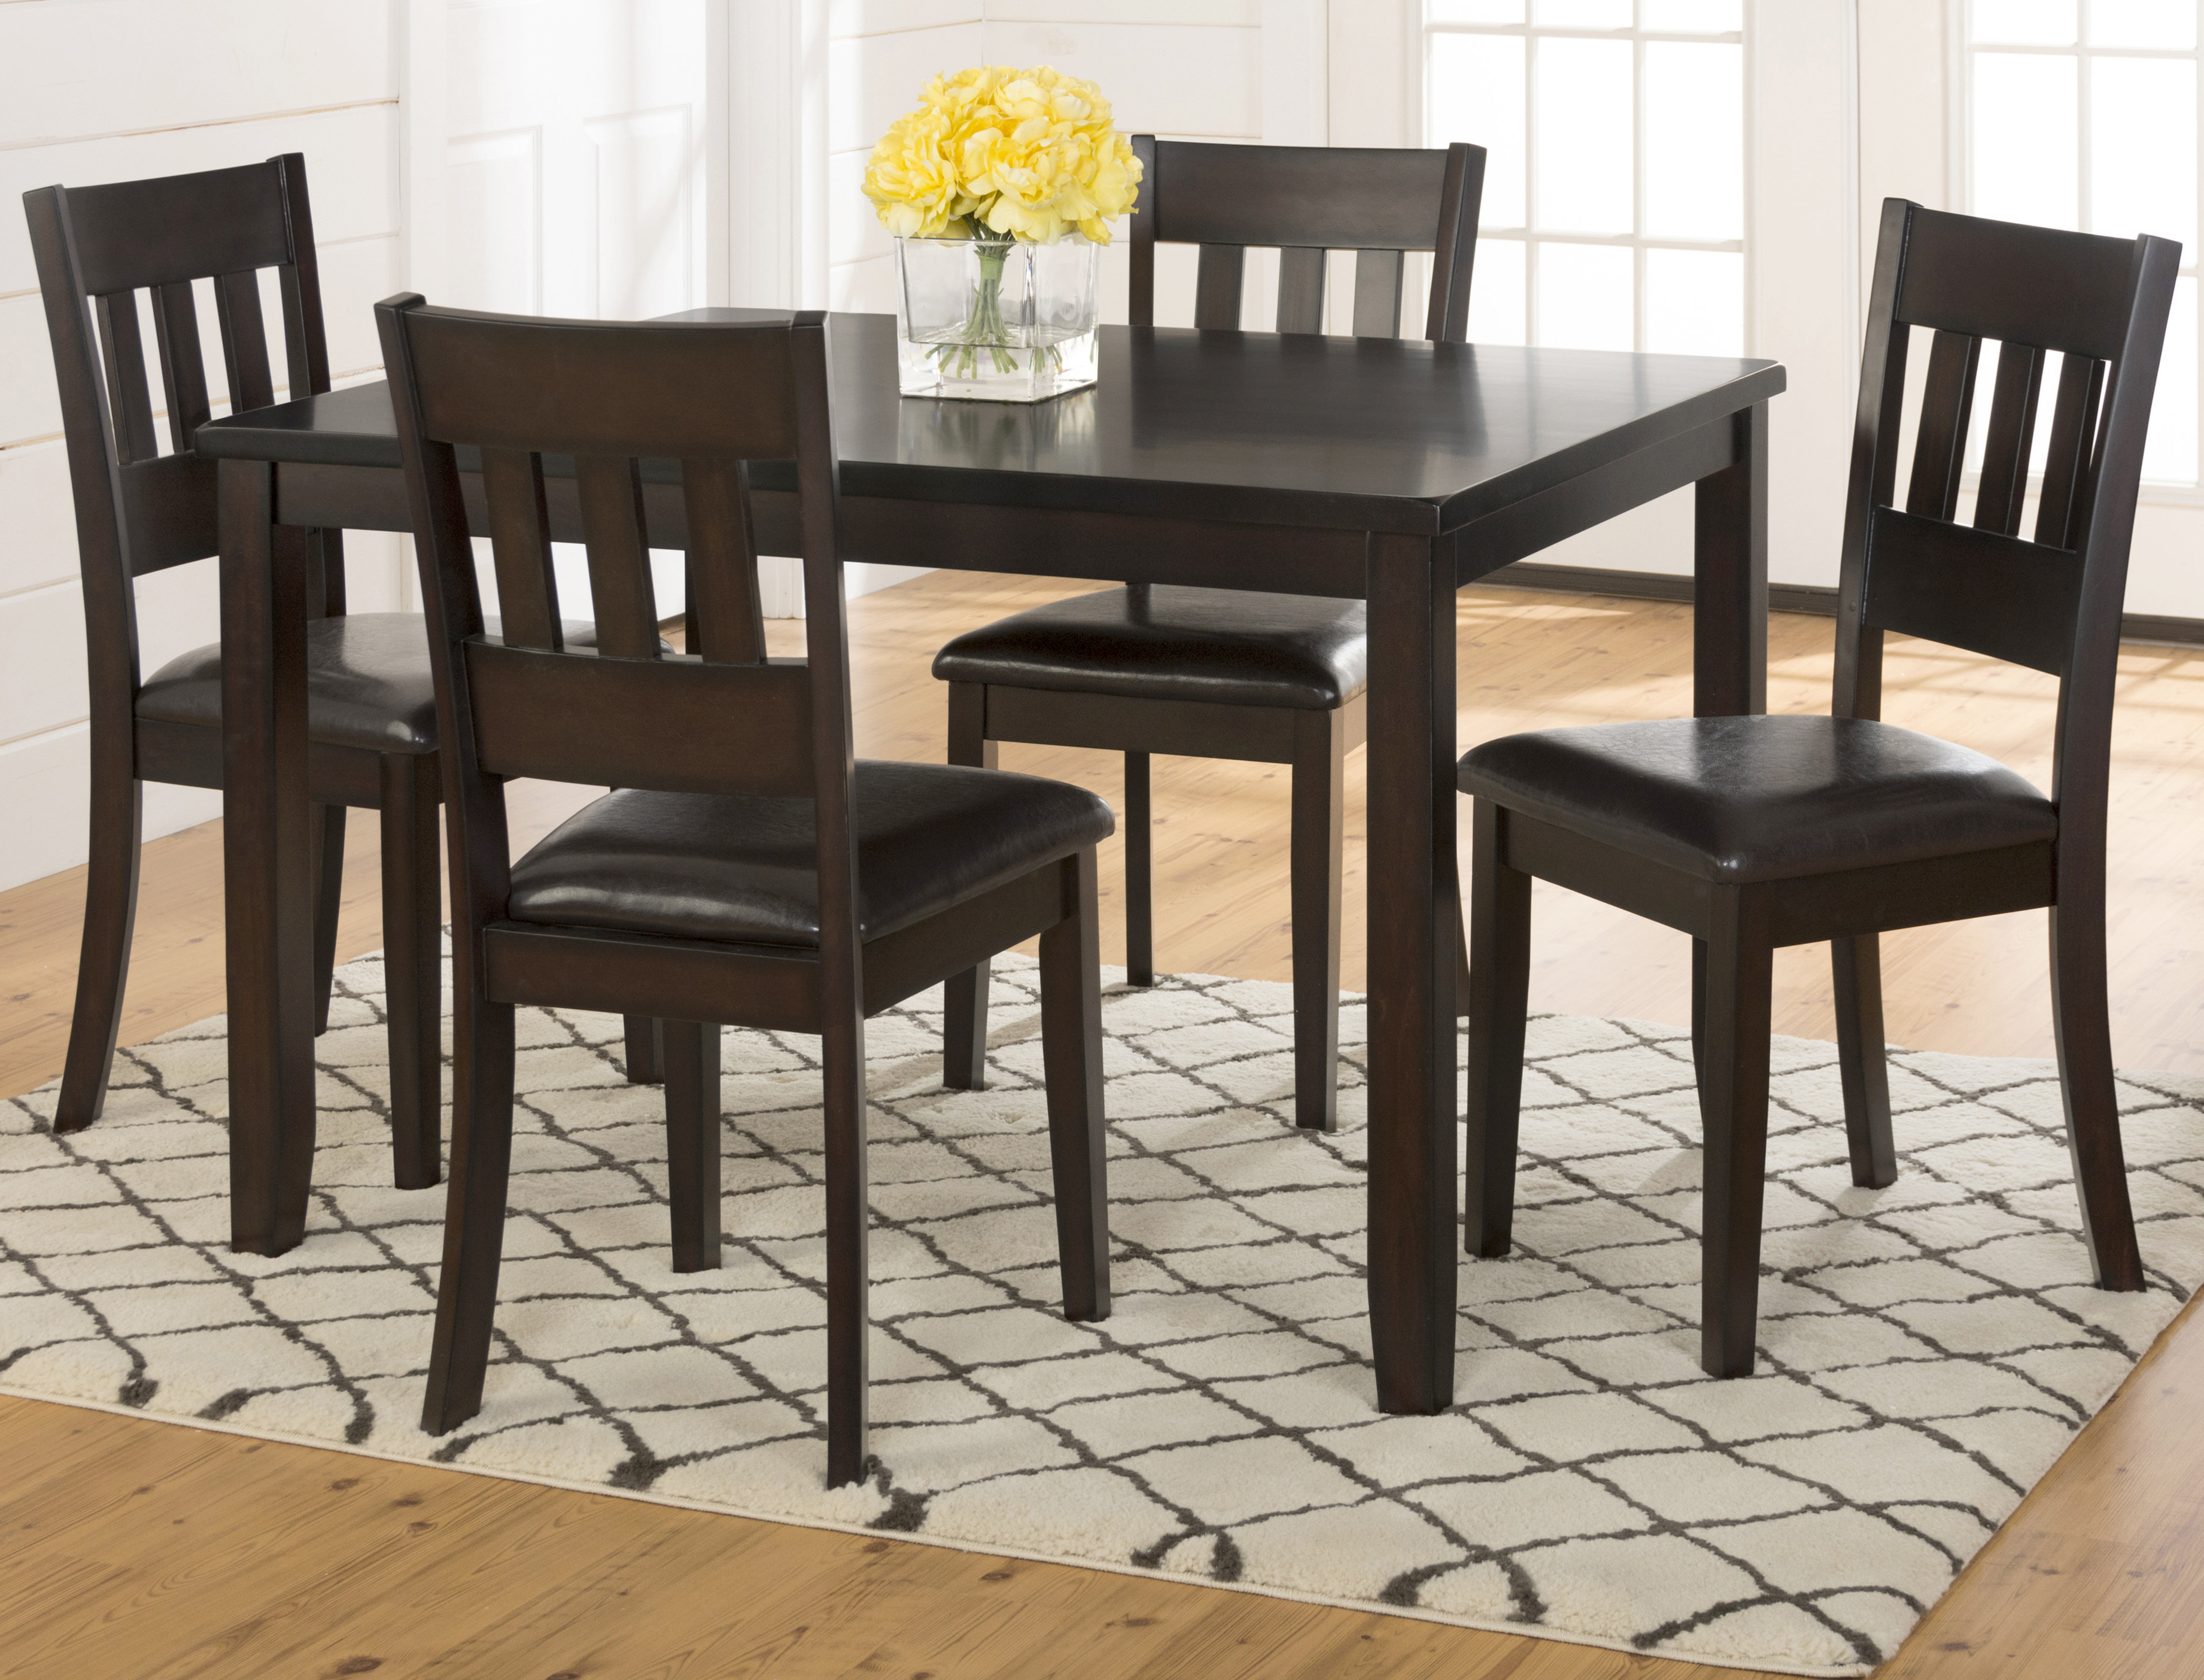 Adan 5 Piece Solid Wood Dining Set Inside Preferred Adan 5 Piece Solid Wood Dining Sets (Set Of 5) (View 5 of 20)